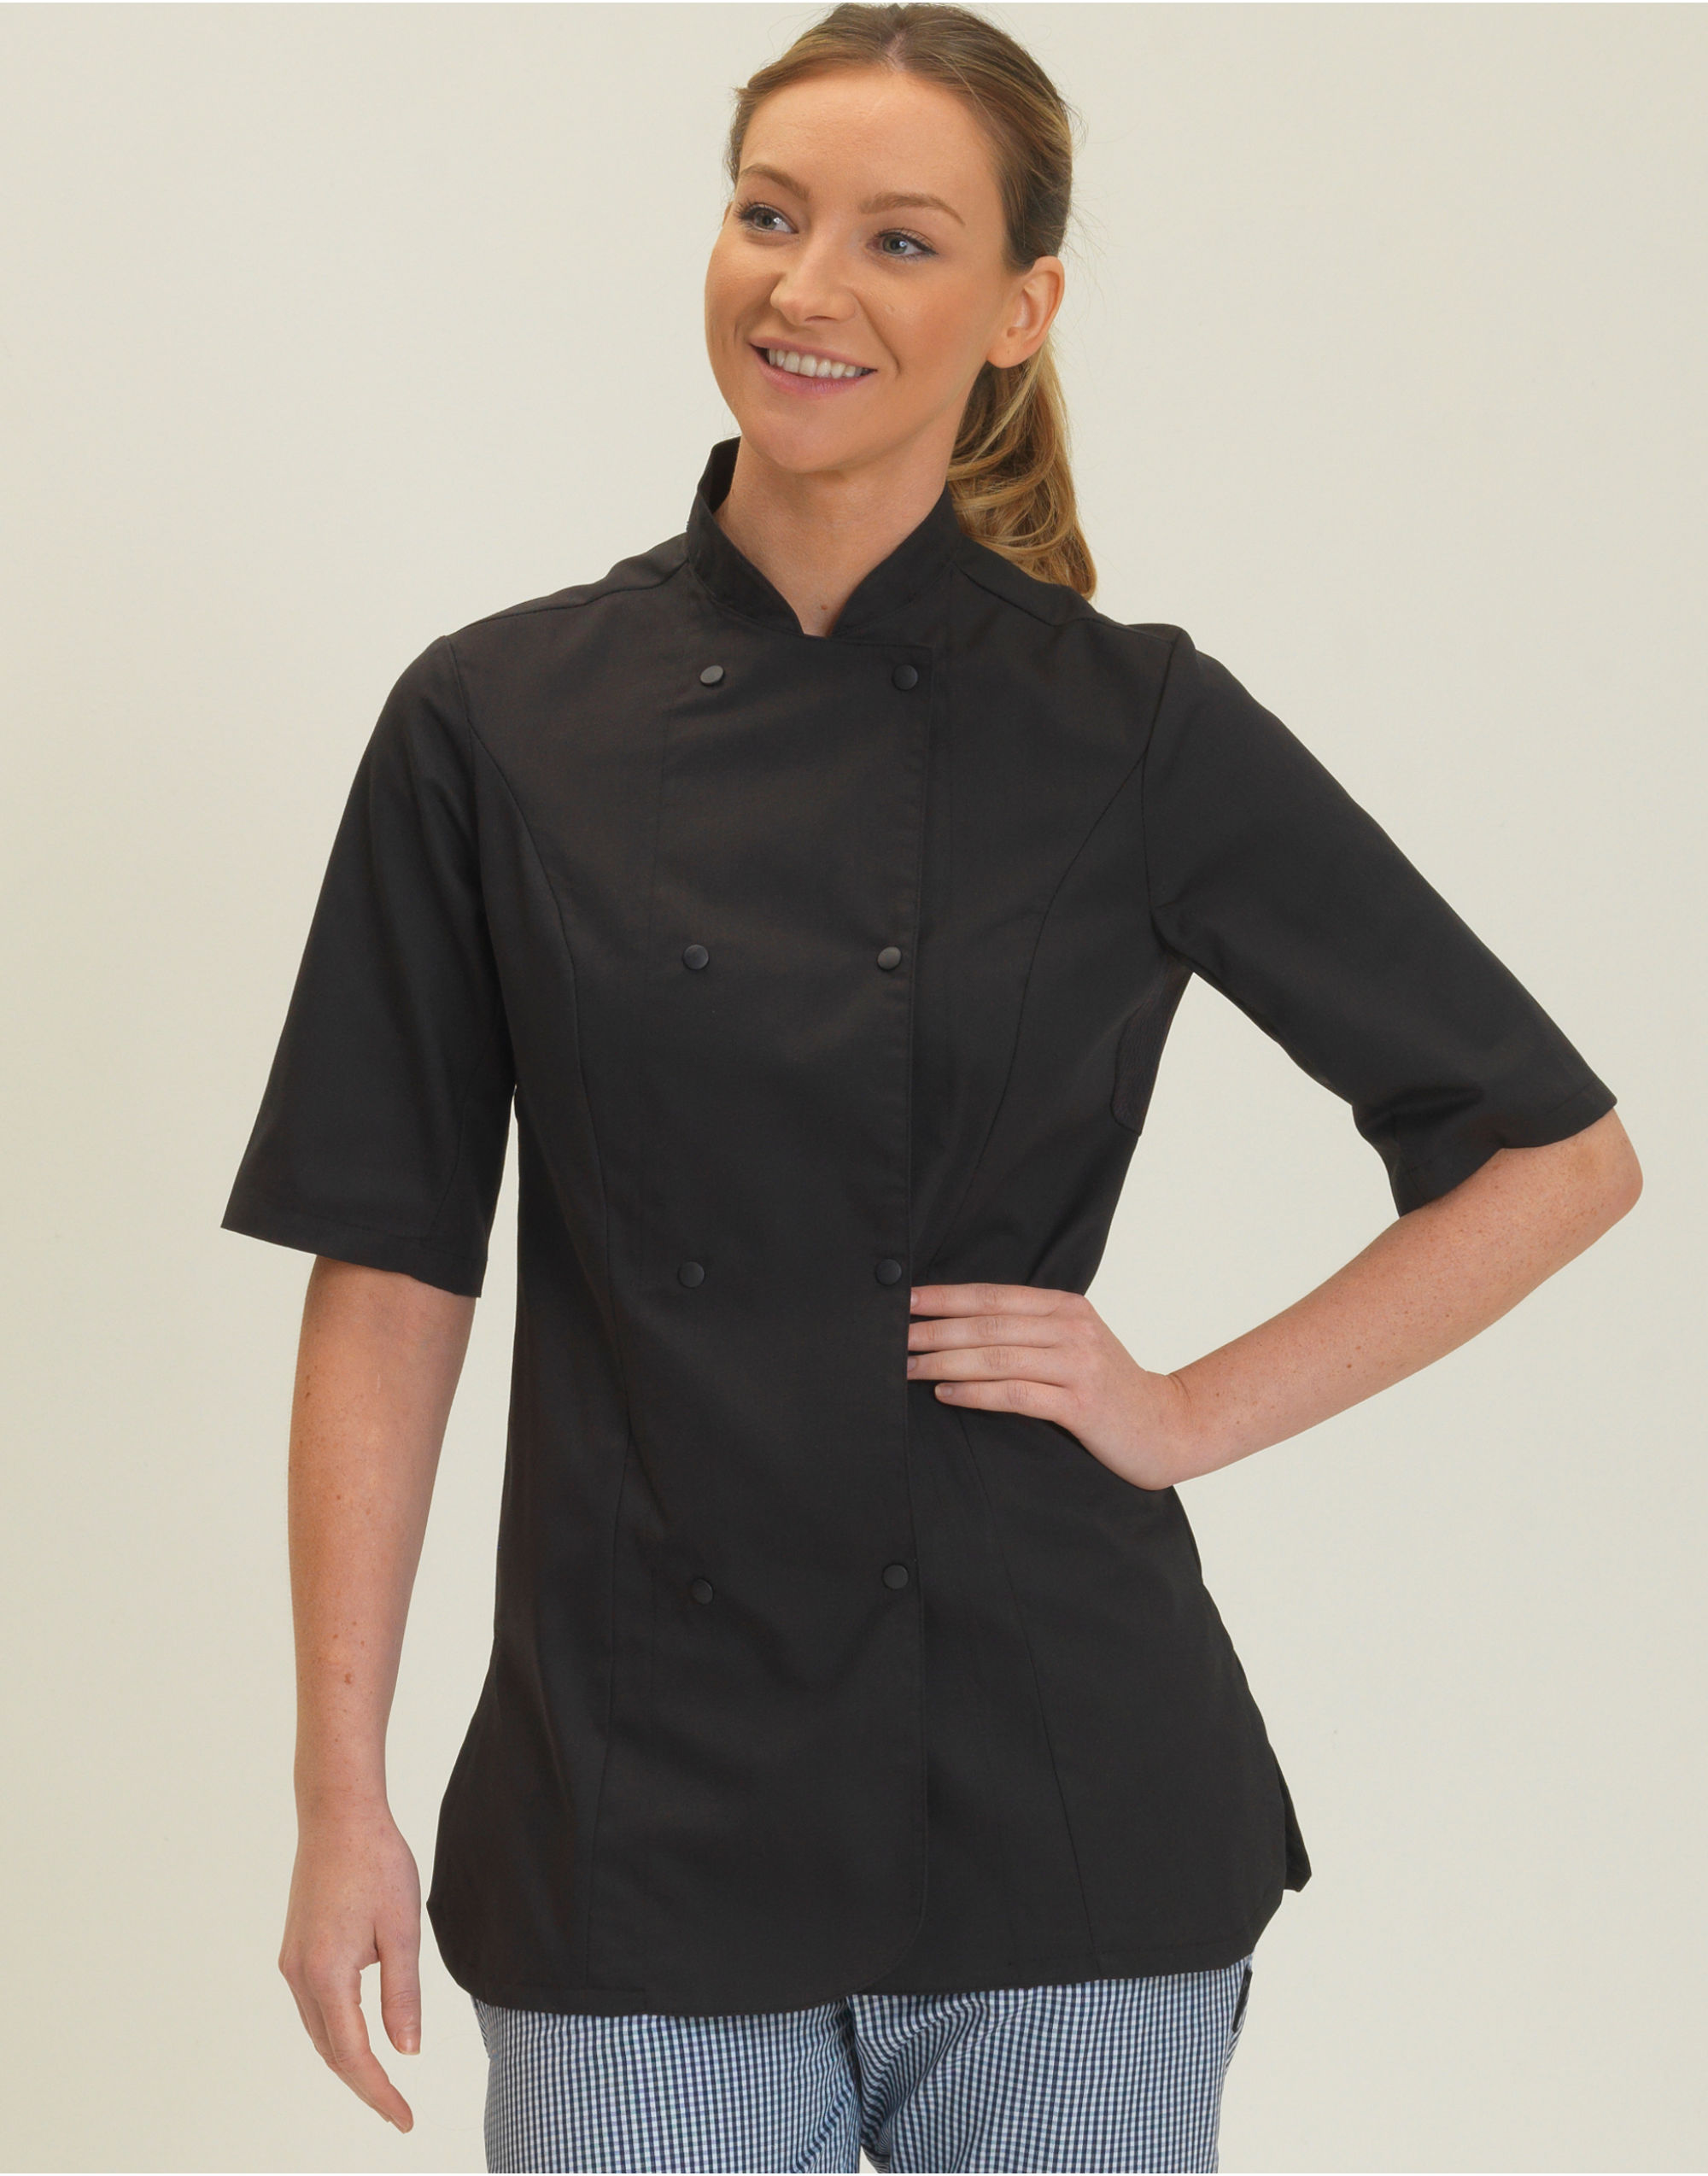 Ladies S/Sleeve Chefs Jacket